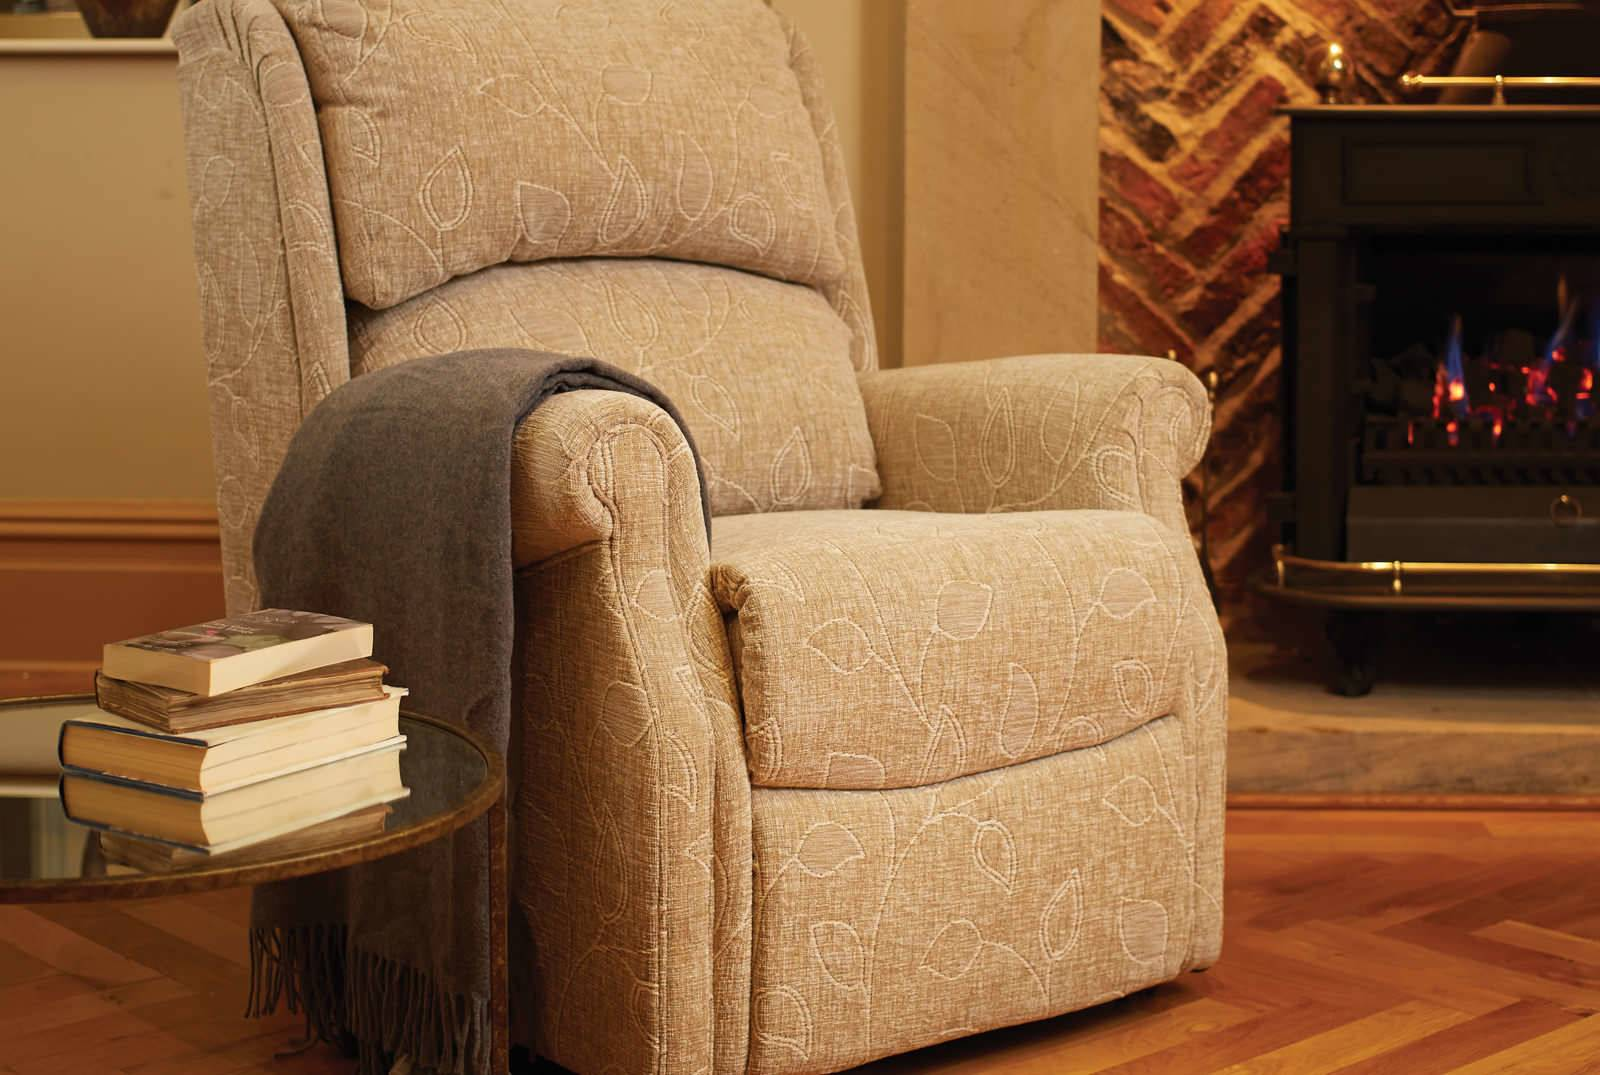 Berwick Comfort Chair in Montana Floral Cocoa